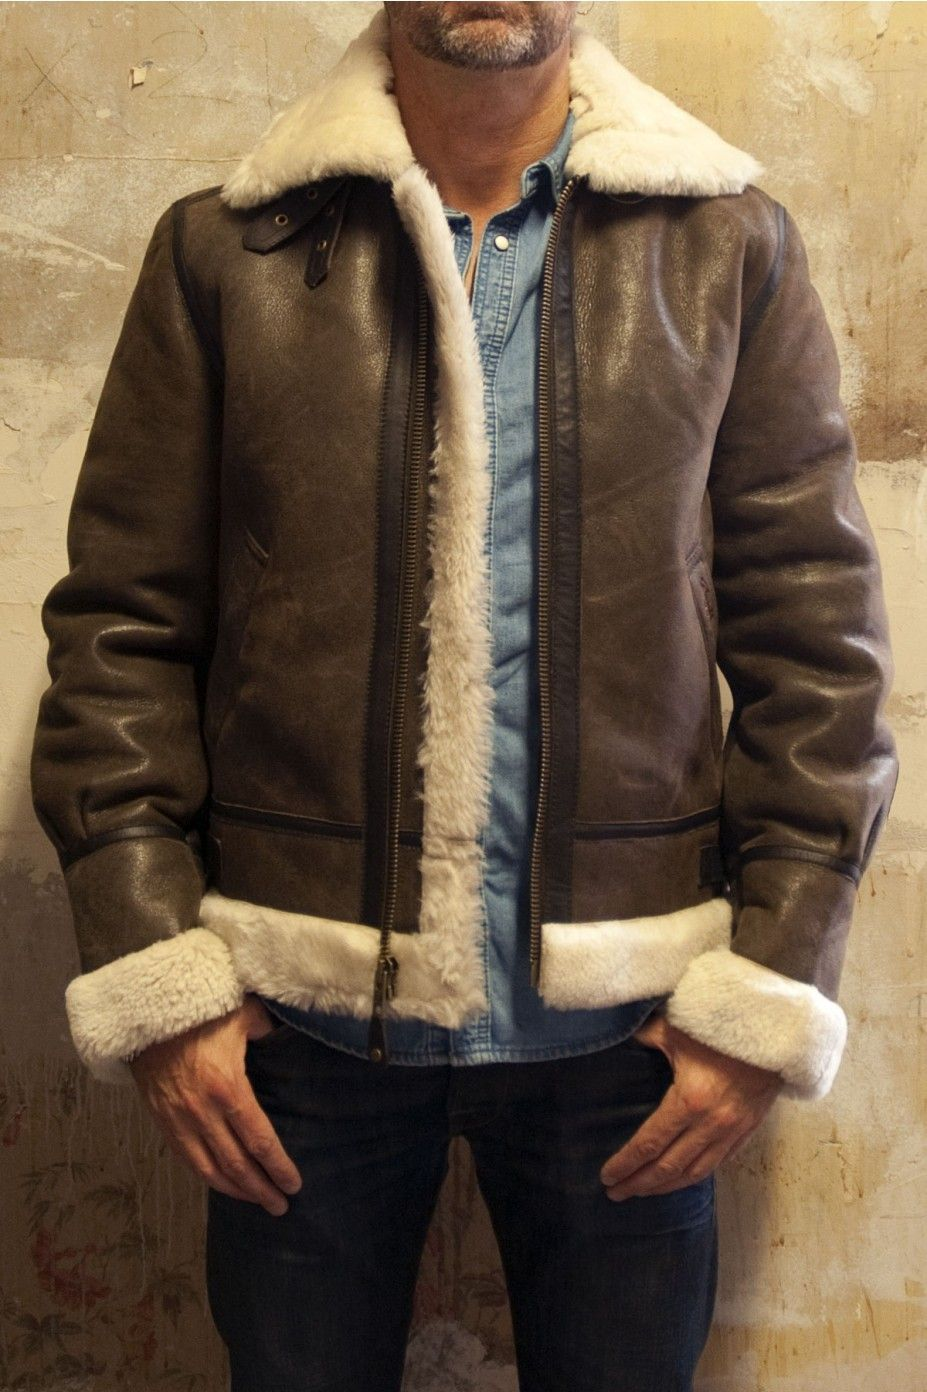 Schott Brown Pilot Jacket Mens Fashion Mens Coats A Bomber Jacket My Friend Used To Have One Looked Goo Leather Jacket Men Pilot Leather Jacket Mens Outfits [ 1392 x 927 Pixel ]